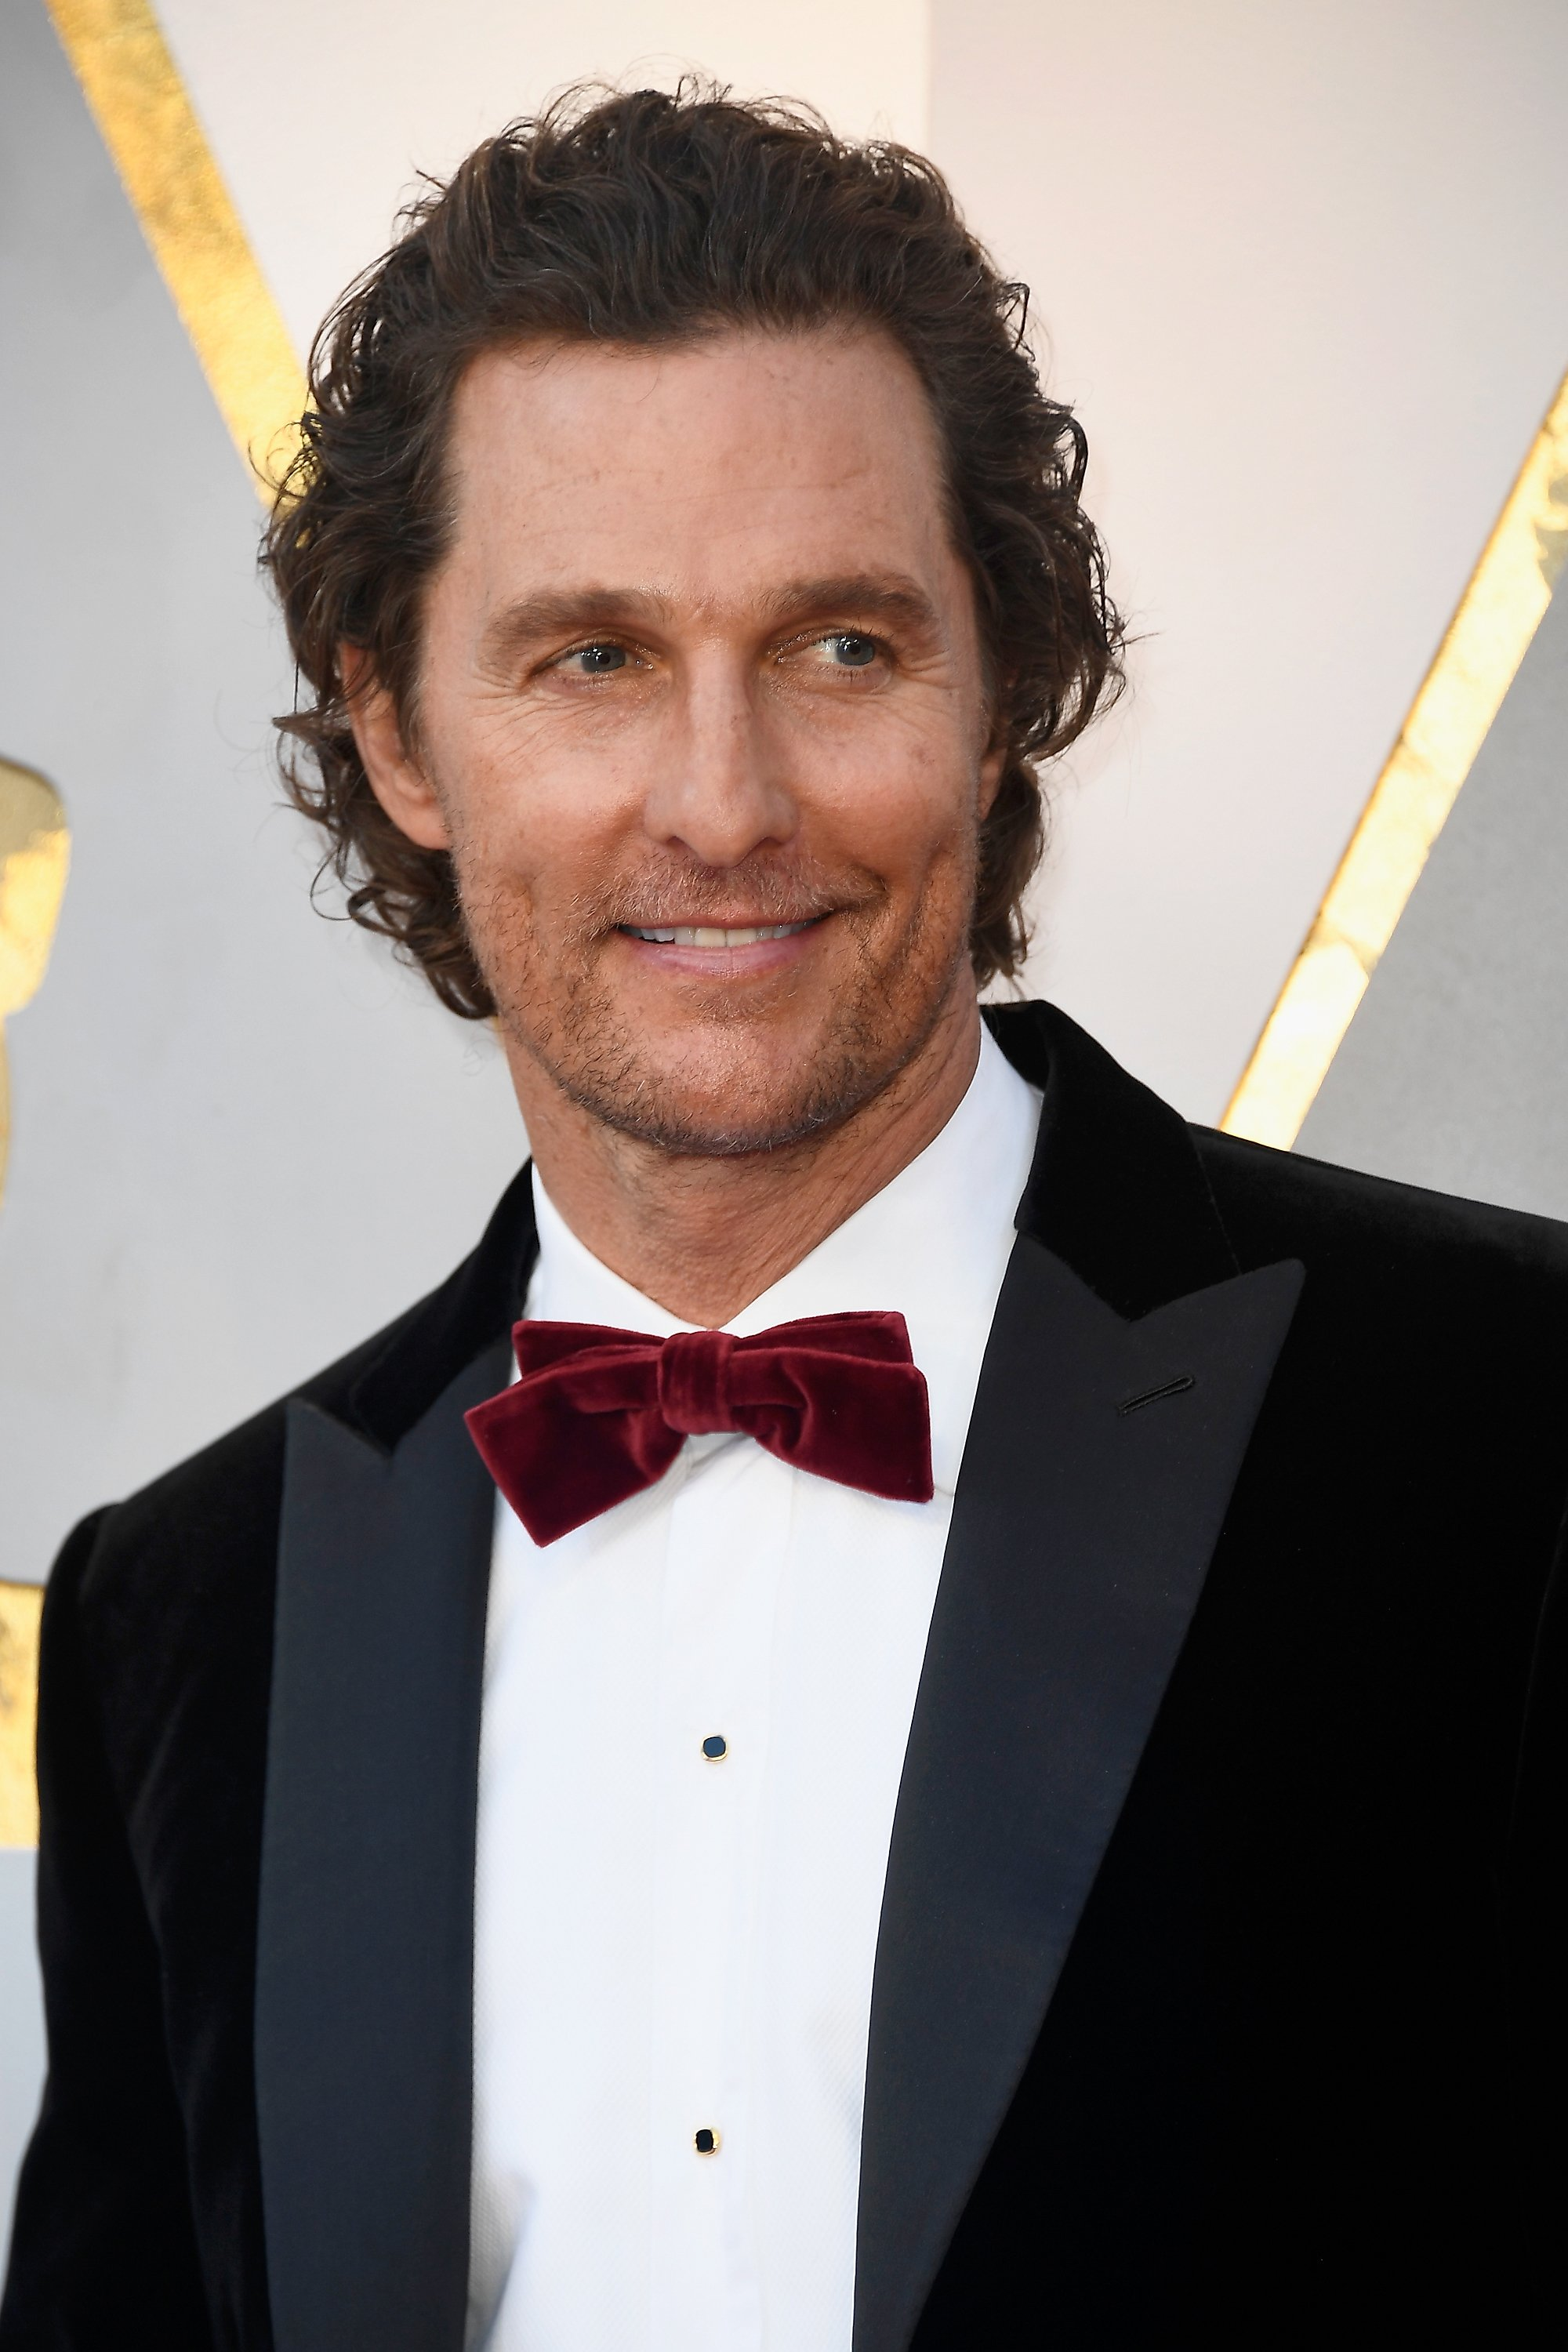 Matthew McConaughey attends the 90th Annual Academy Awards at Hollywood & Highland Center on March 4, 2018, in Hollywood, California. | Source: Getty Images.